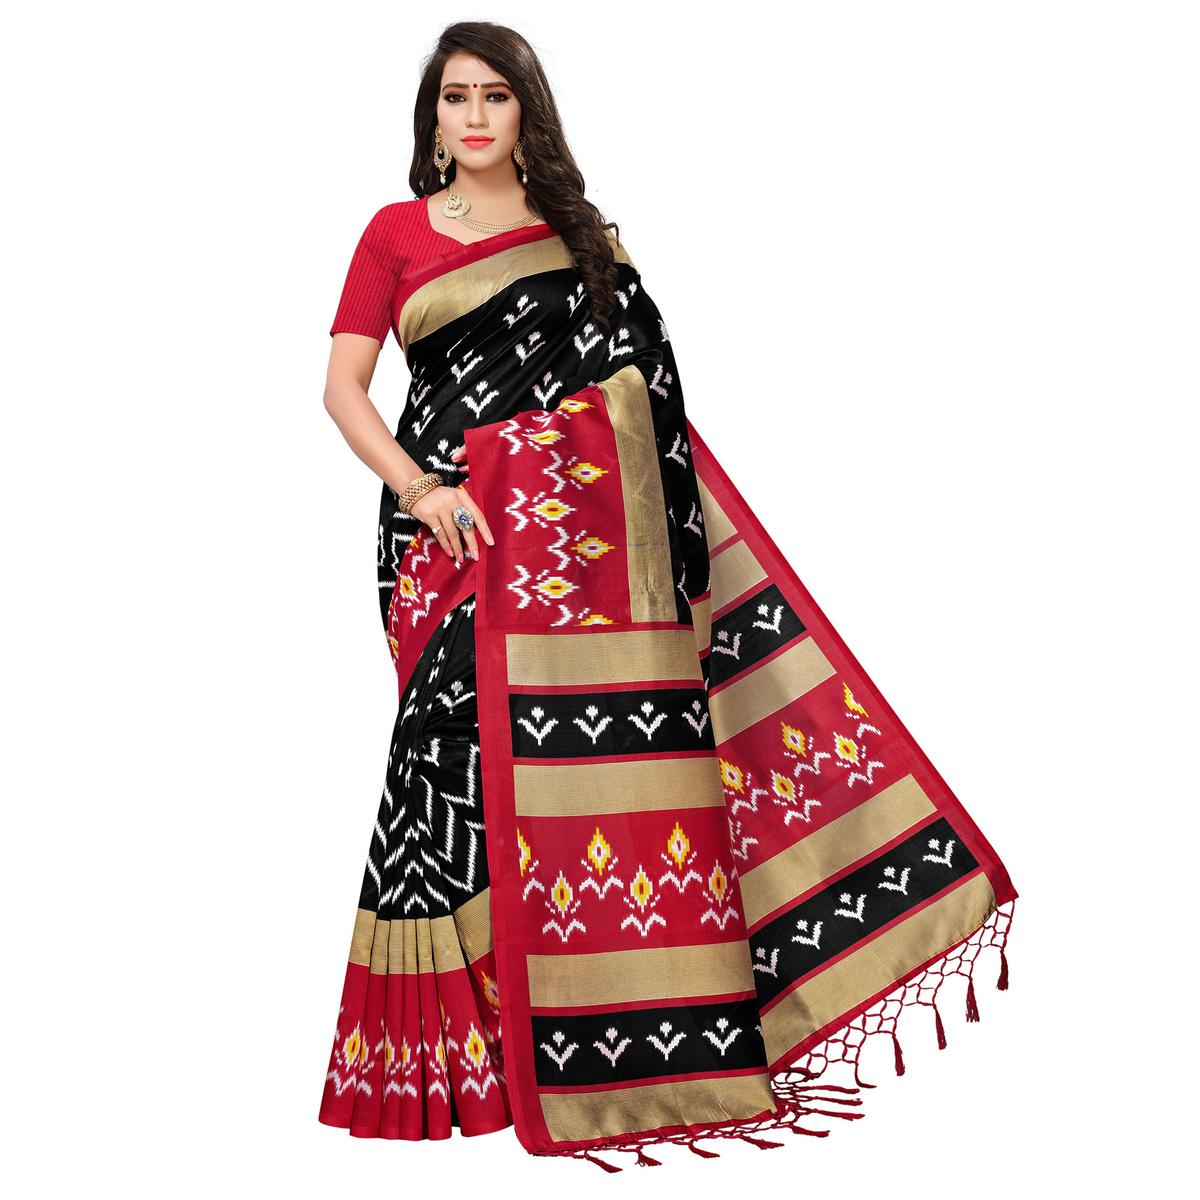 Beautiful Black-Red Colored Printed Festive Wear Mysore Art Silk Saree